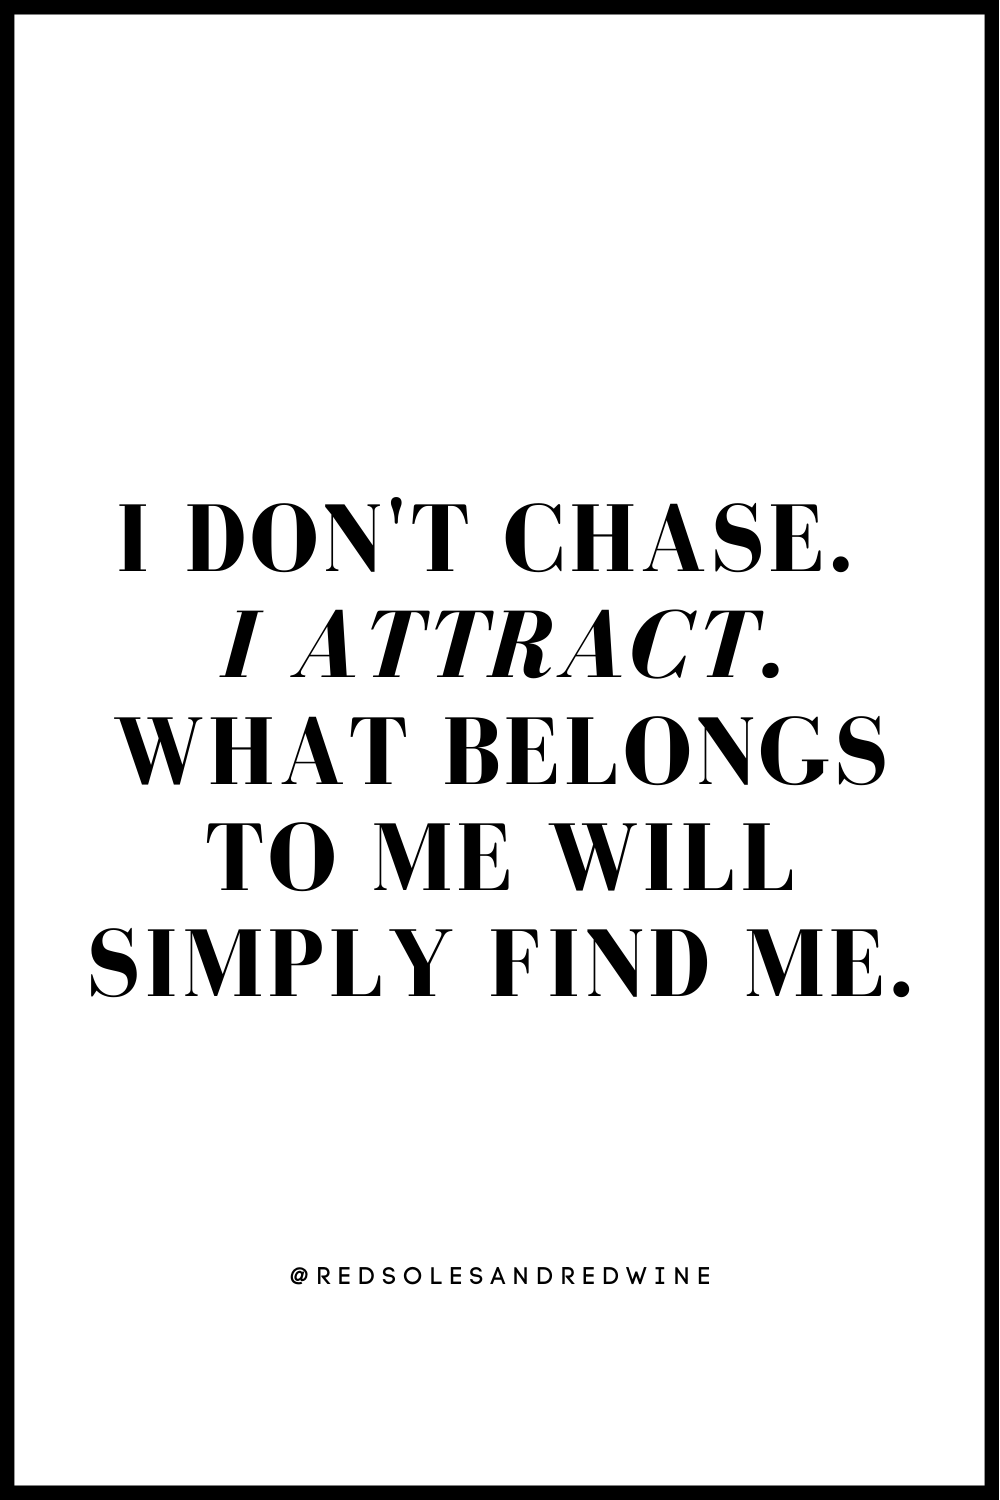 I don't chase I attract quote, manifesting quotes, laws of attraction quote, self love quote, dating quote, single girl quote, dating advice, best dating tips, tips for single women, self love advice, self love tips, relationship tips, relationships advice, dating tips